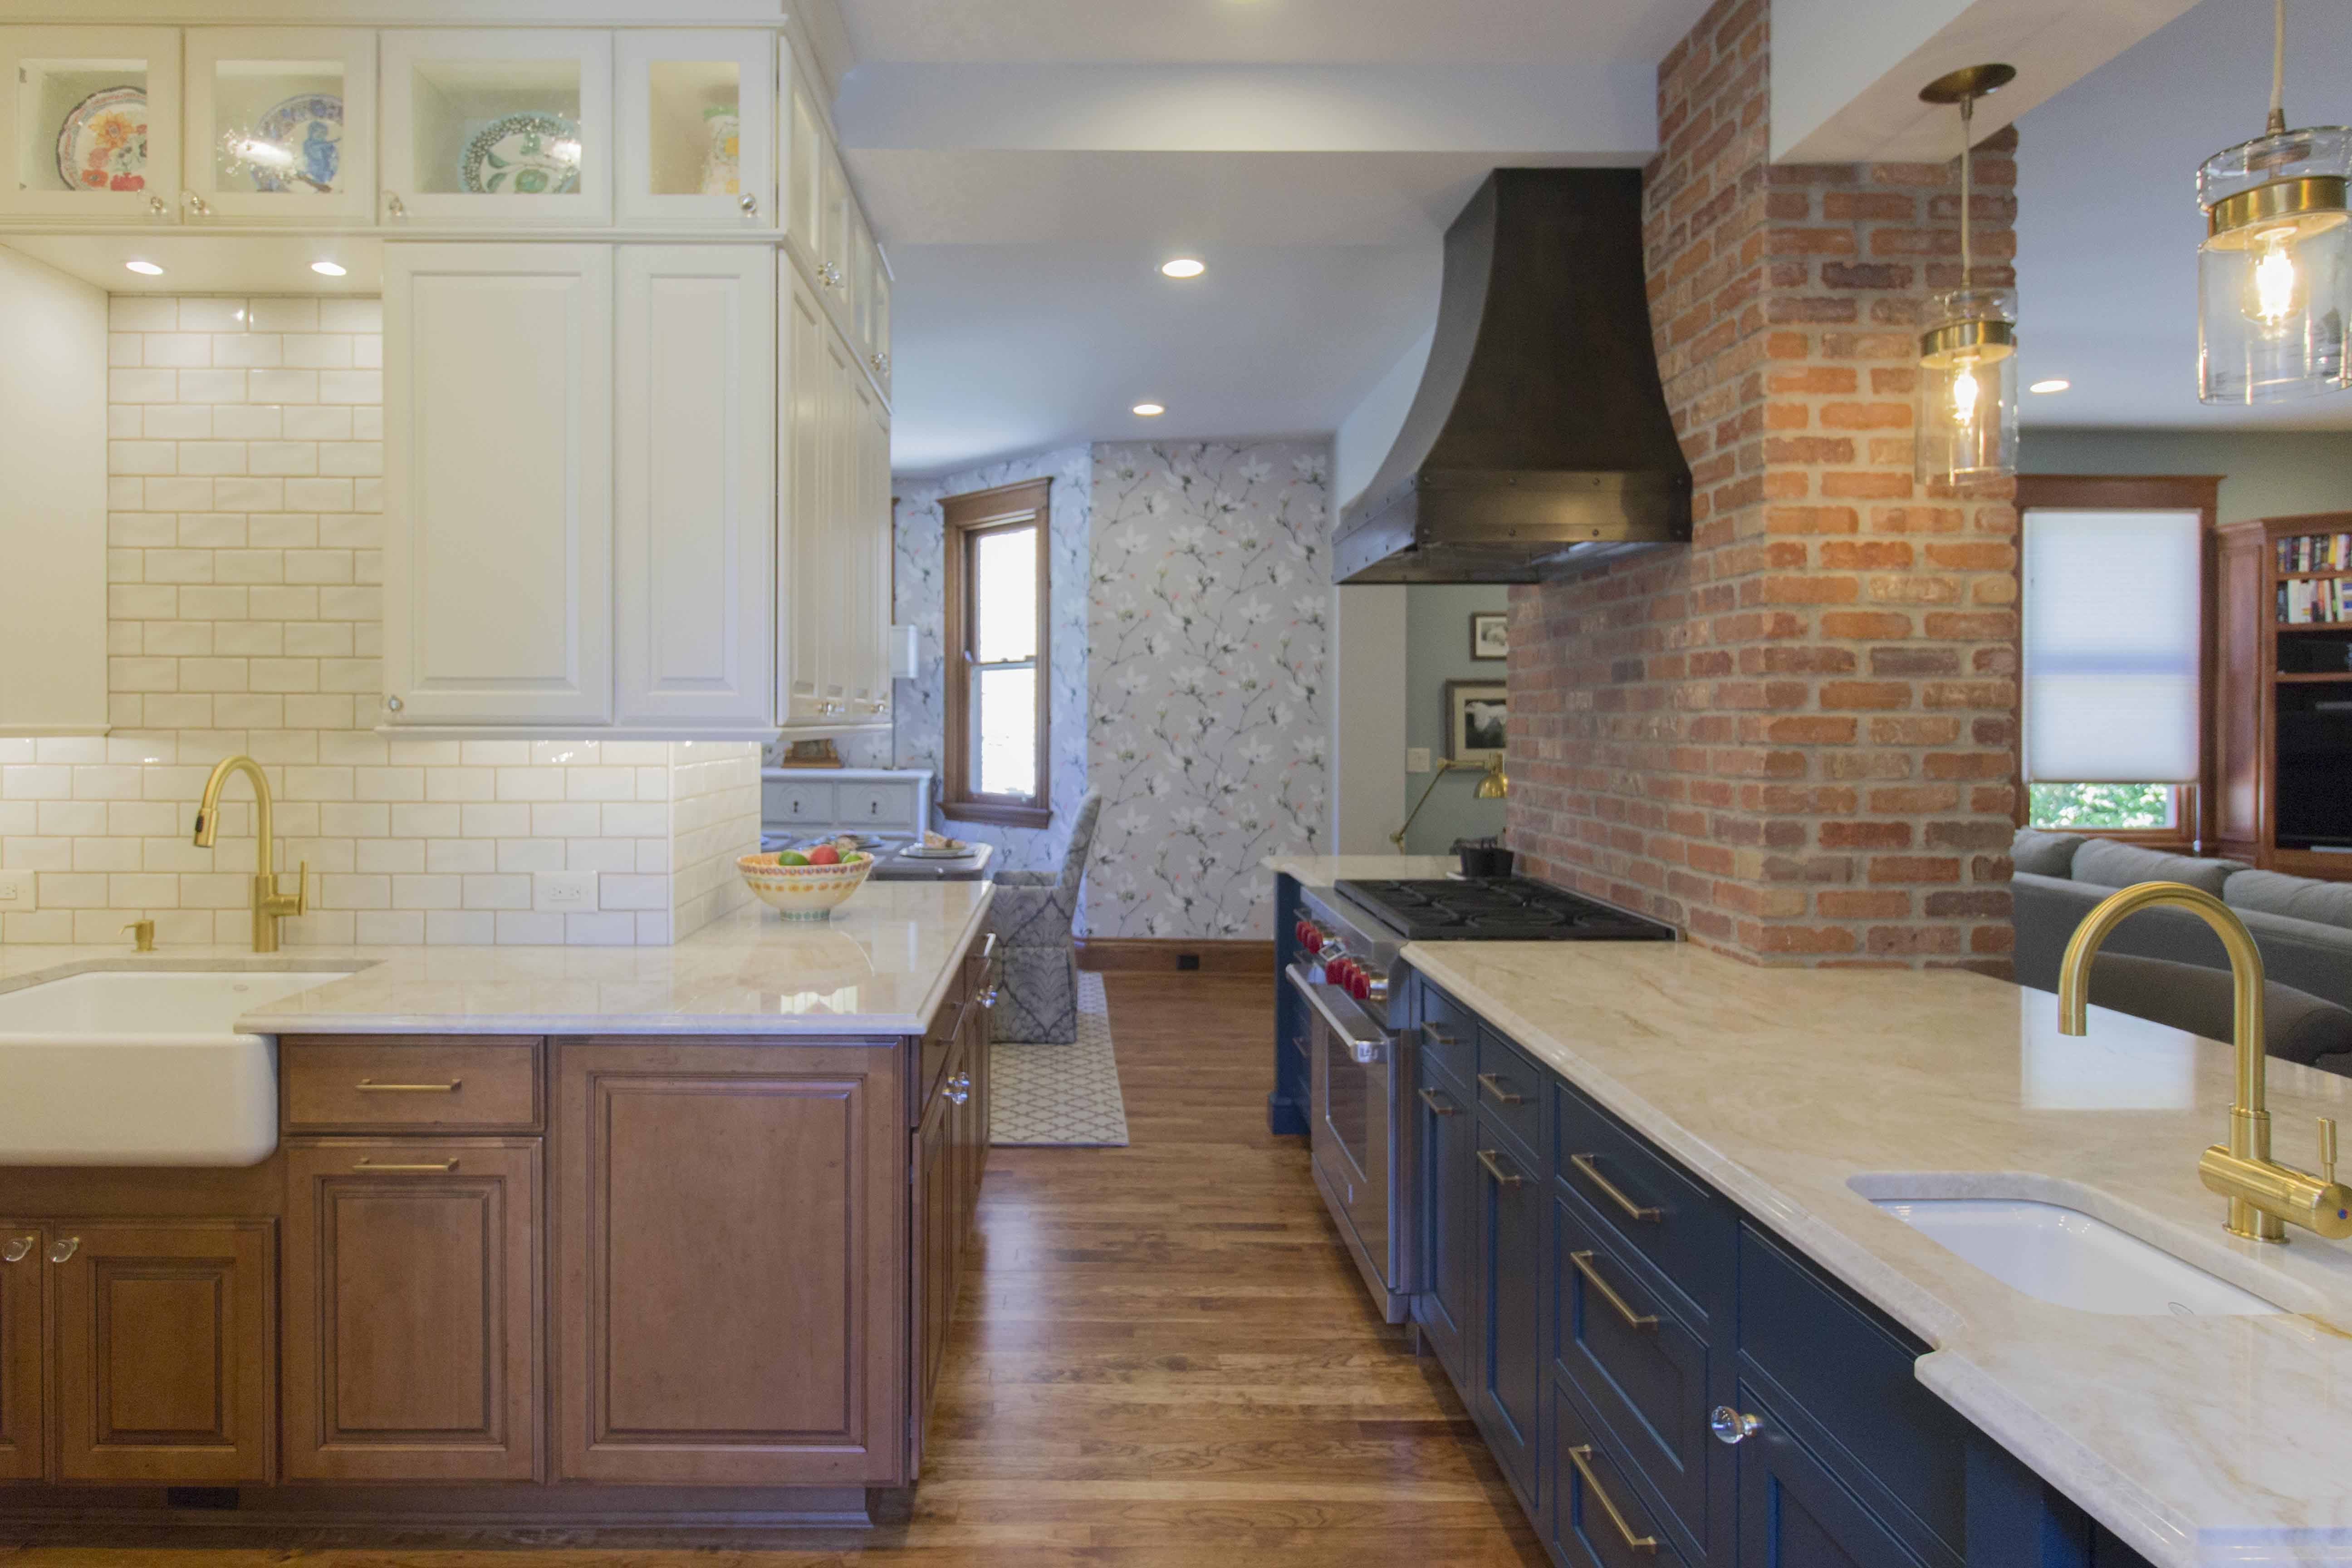 Take A Look At This Eclectic Kitchen Renovation With Its Beautiful Exposed Brick And Fun Color Combinations Ta Custom Kitchens Design Eclectic Kitchen Kitchen